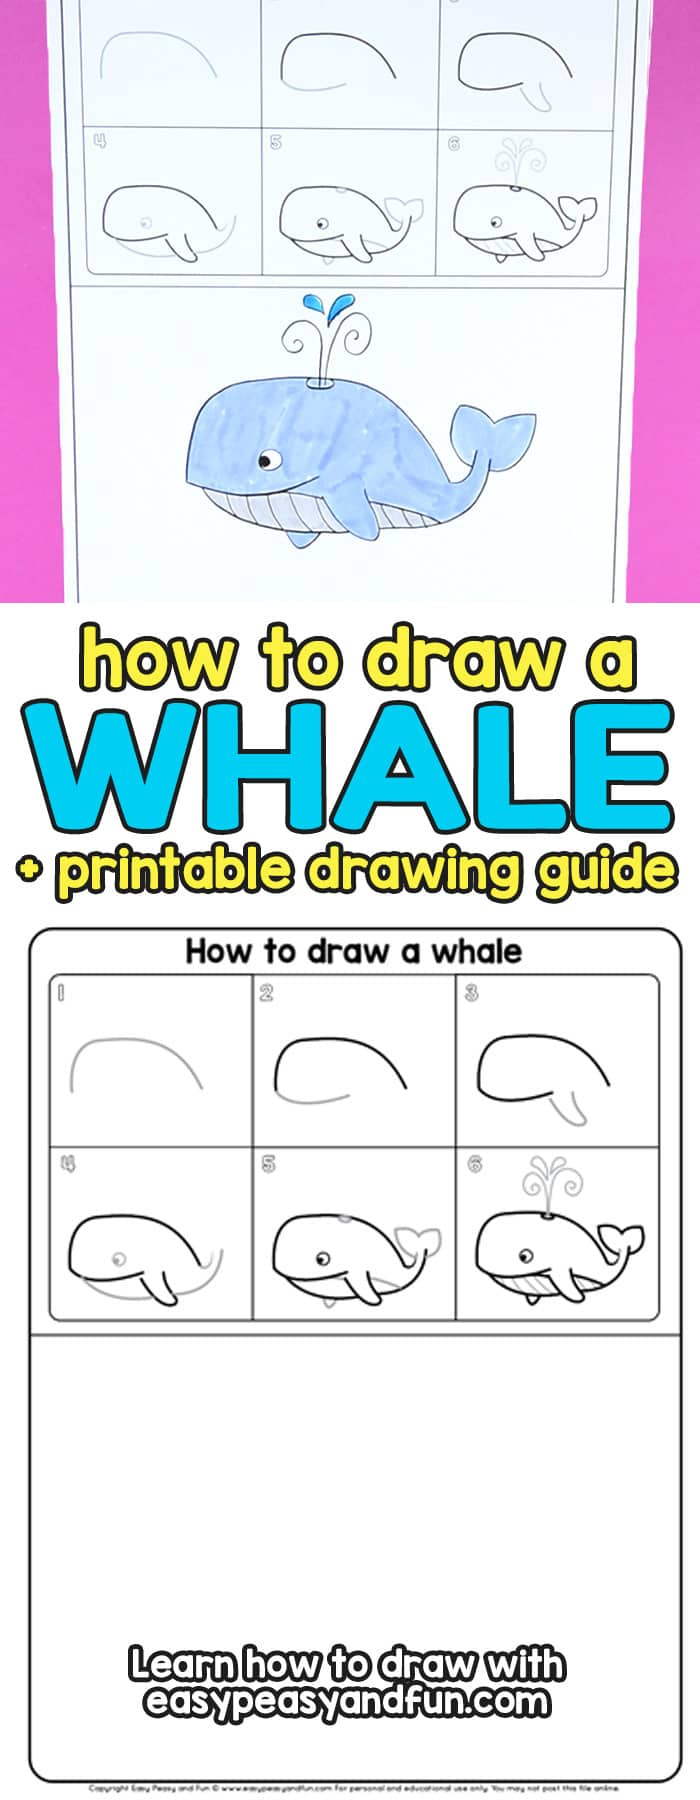 how to draw a whale step by step tutorial for kids cartoon style